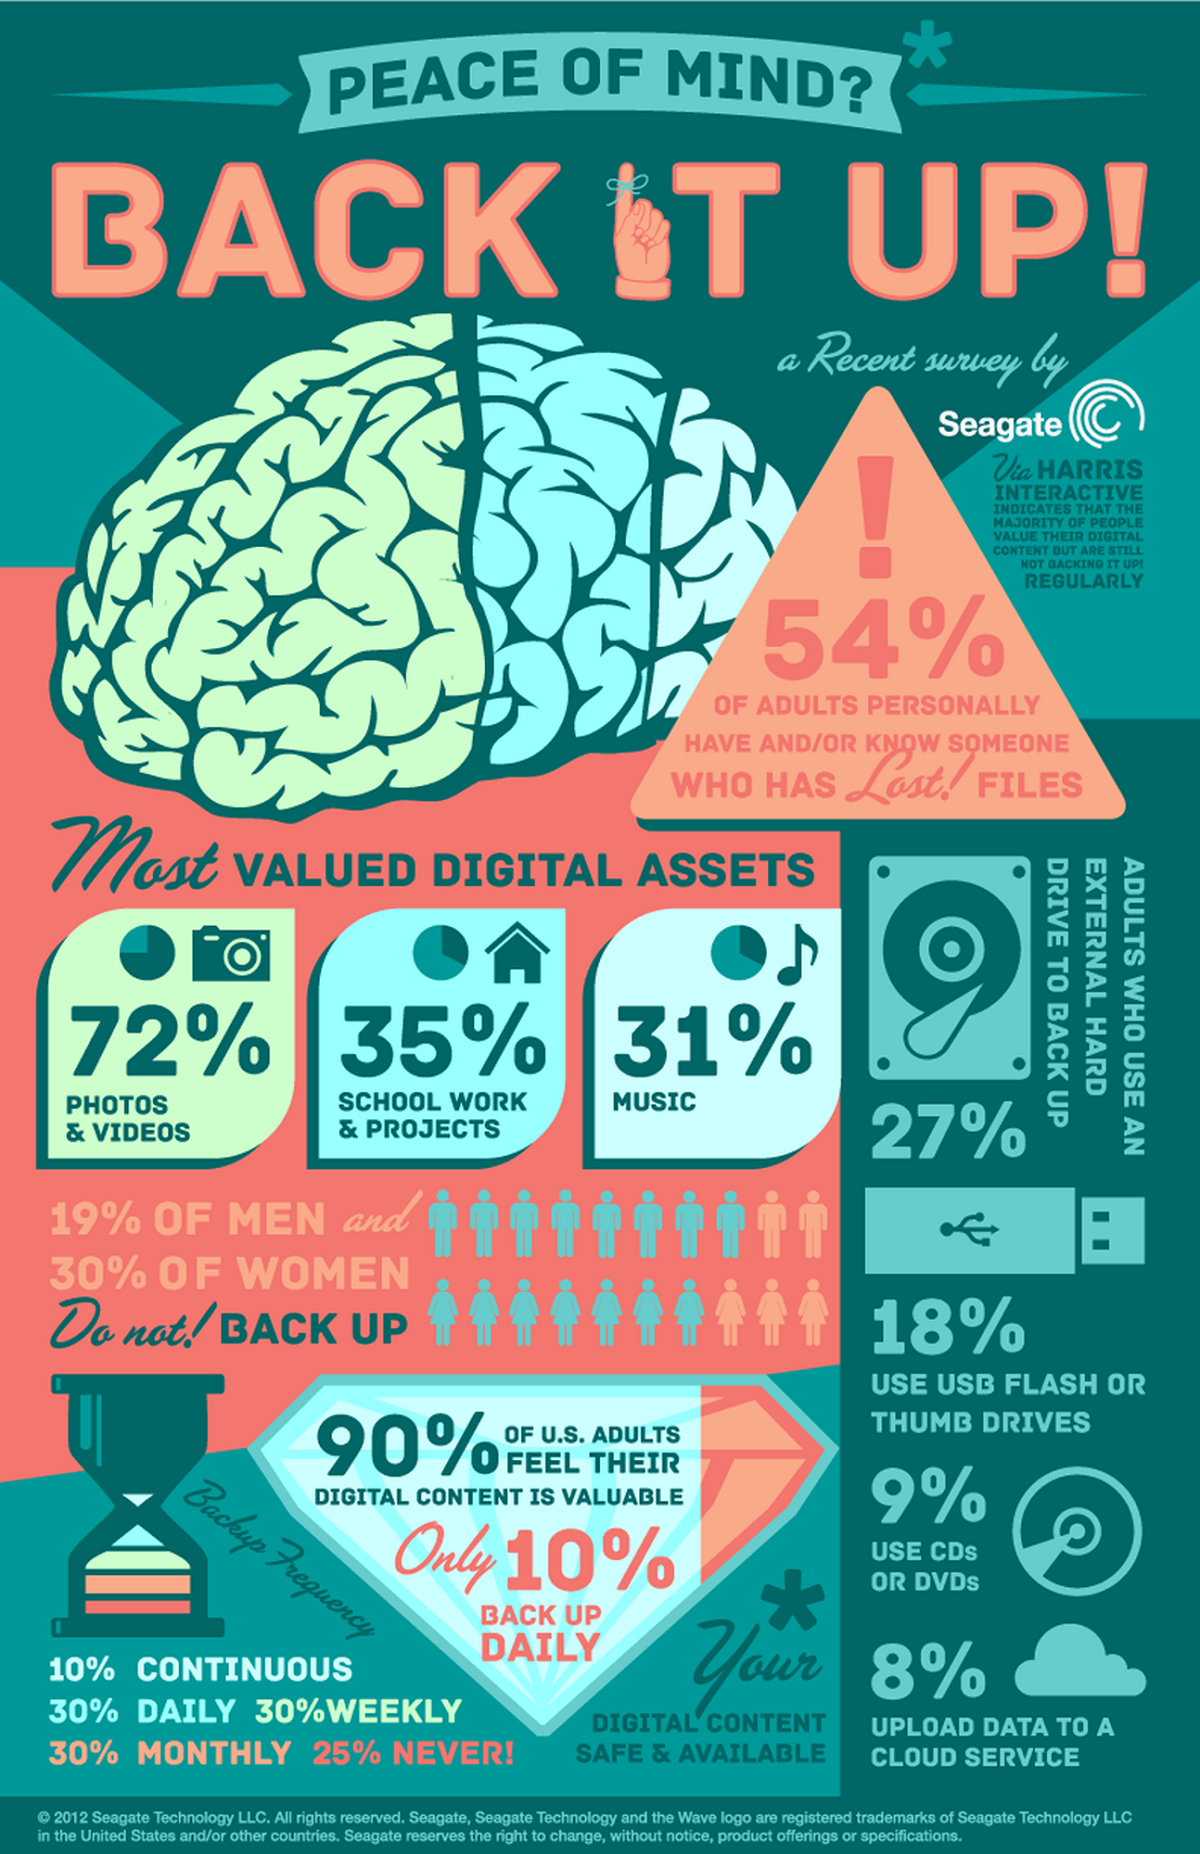 Men Are More Likely to Back Up Their Files Than Women [STUDY] #infographic